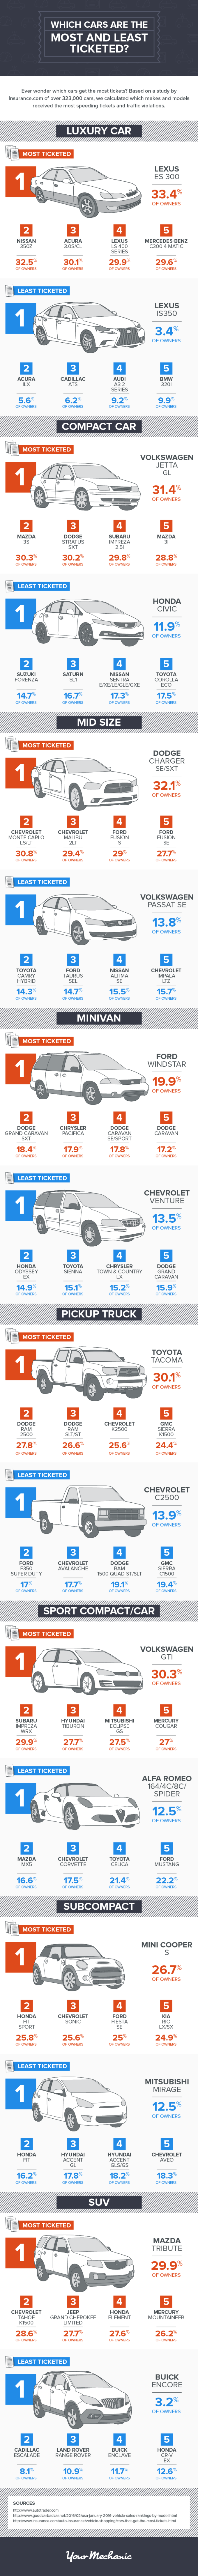 ym-car-ticketing-infographic